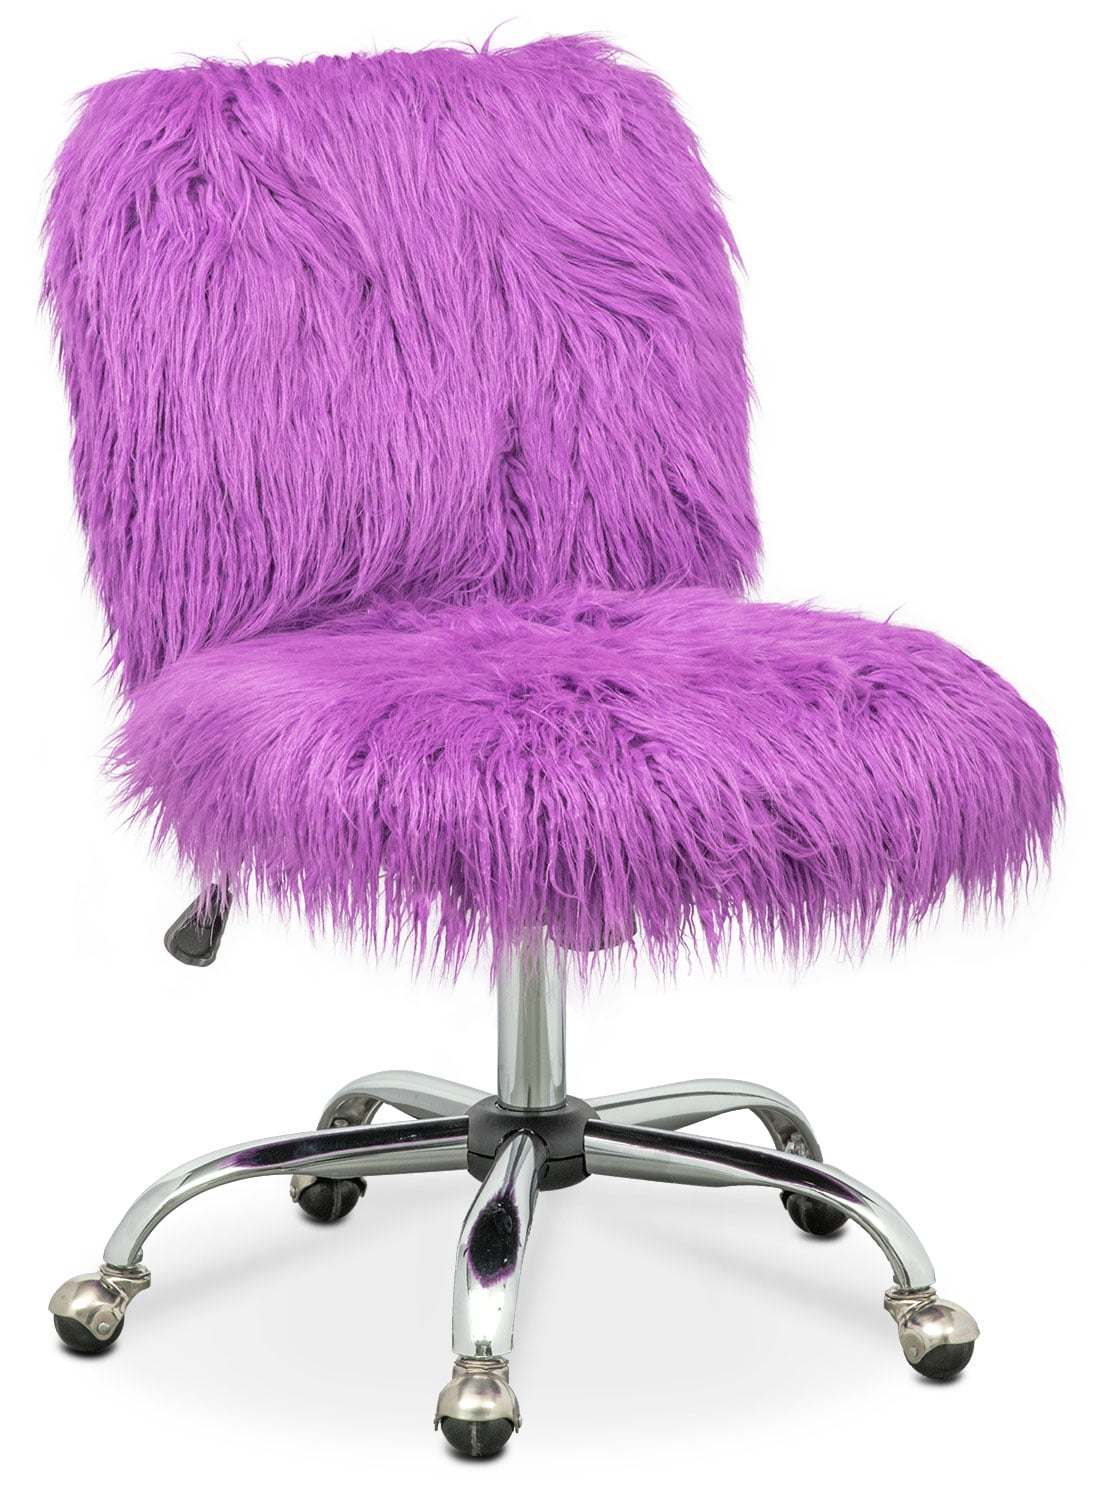 Home Office Furniture Frenzy Chair Purple